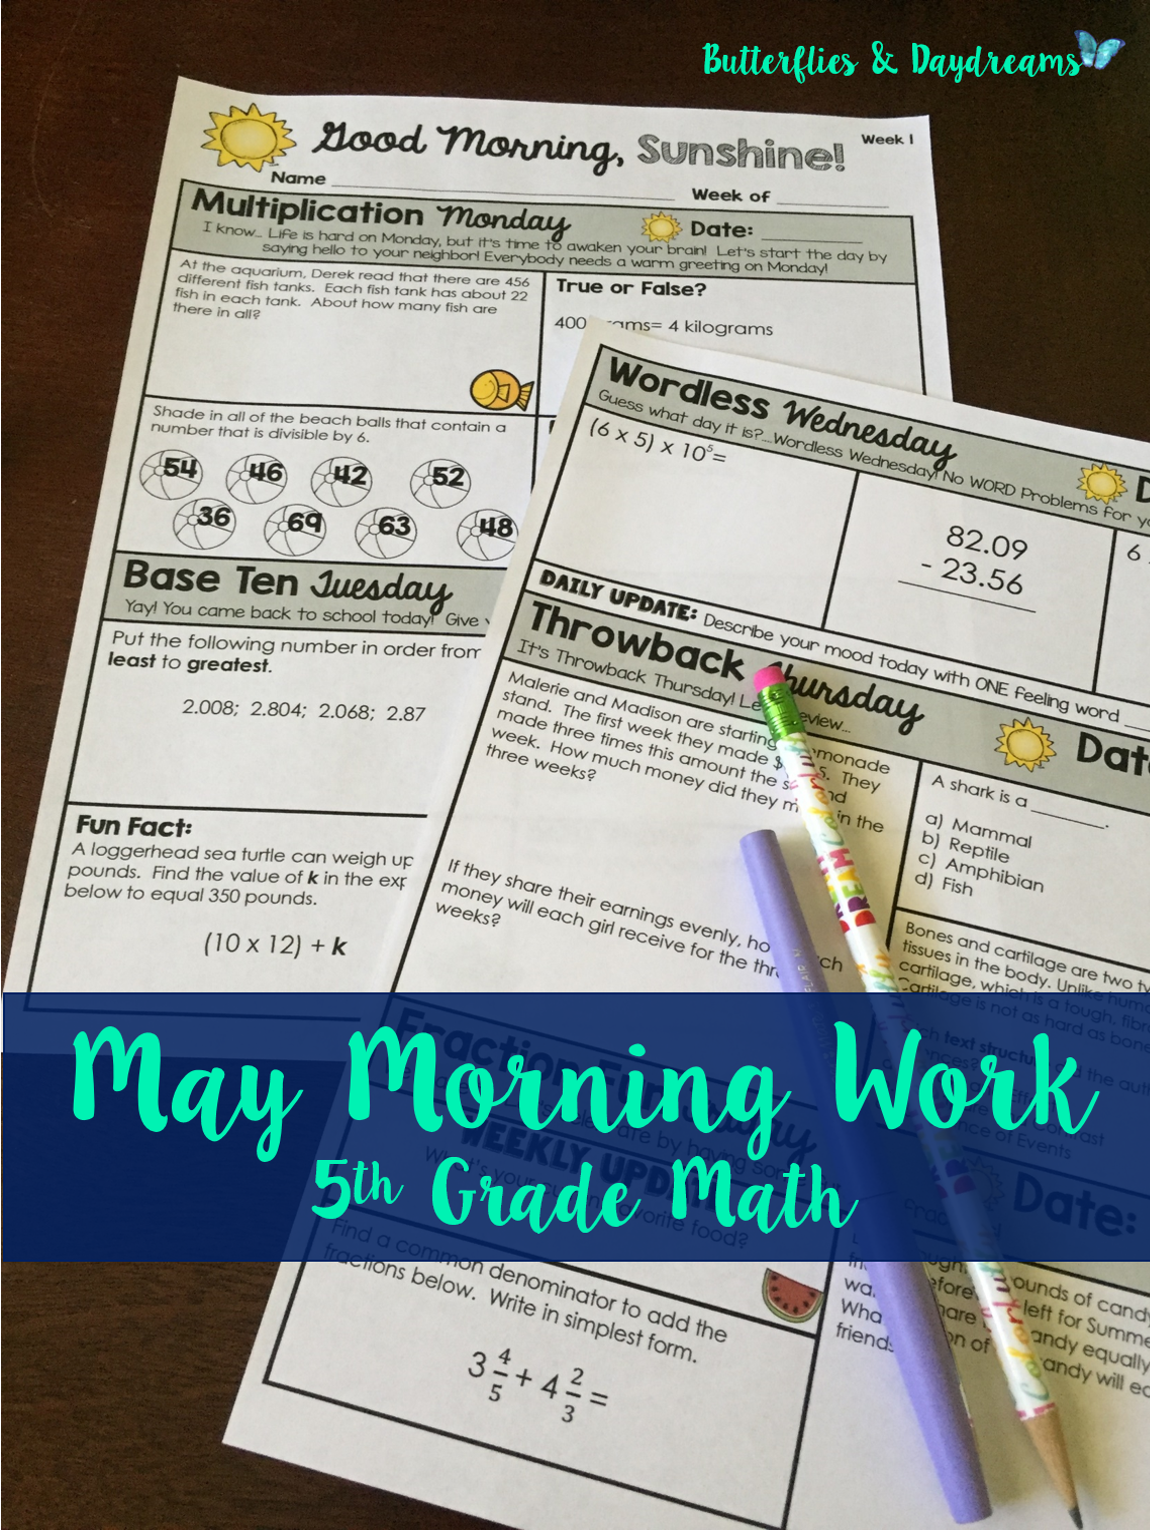 Morning Work 5th Grade May